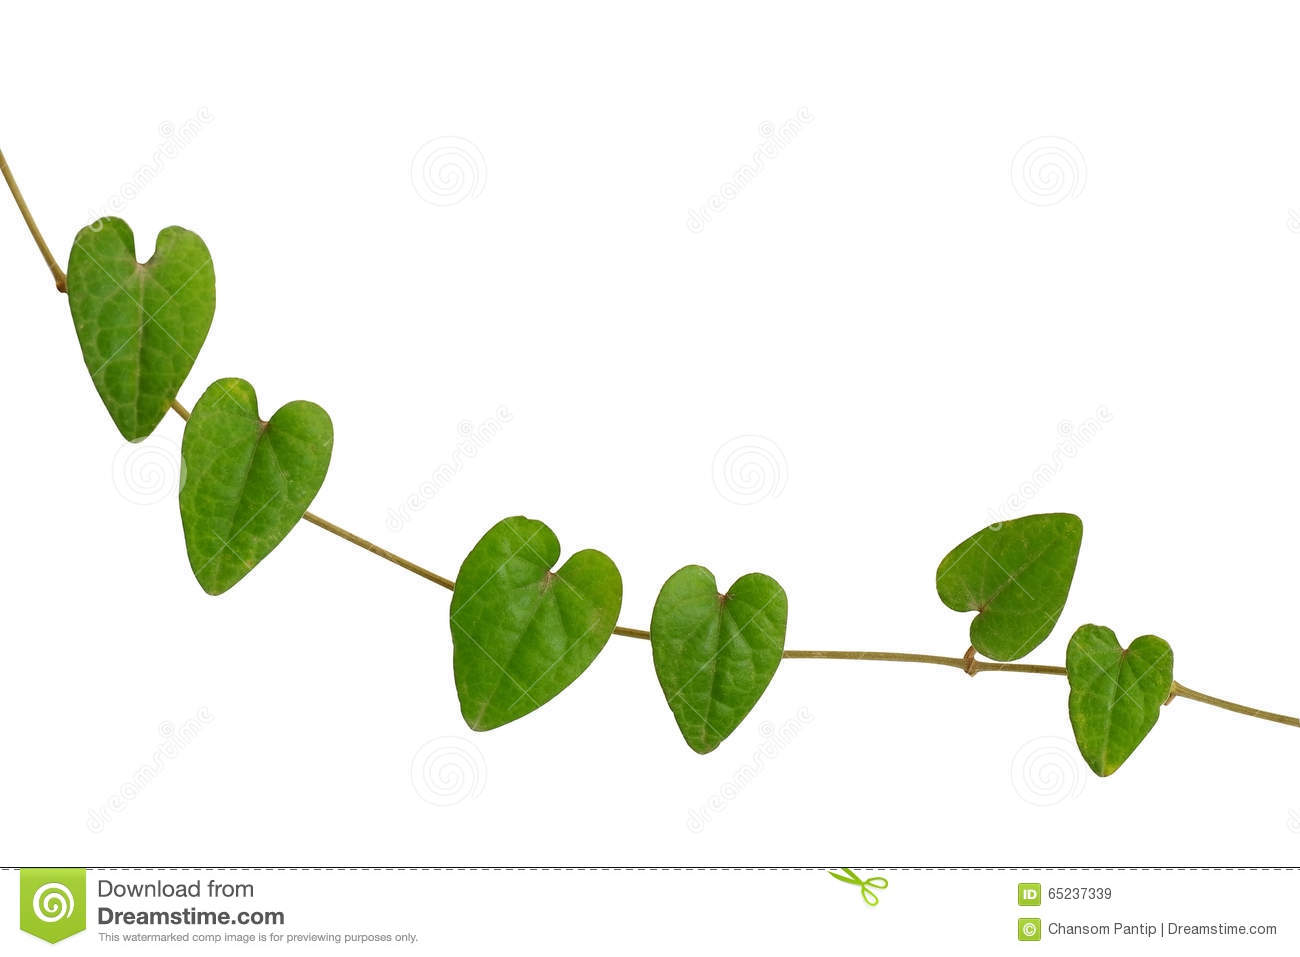 Chain of heart shaped green leaf vine raphistemma hooperianum chain of heart shaped green leaf vine raphistemma hooperianum blume decne isolated on white background with clipping path mightylinksfo